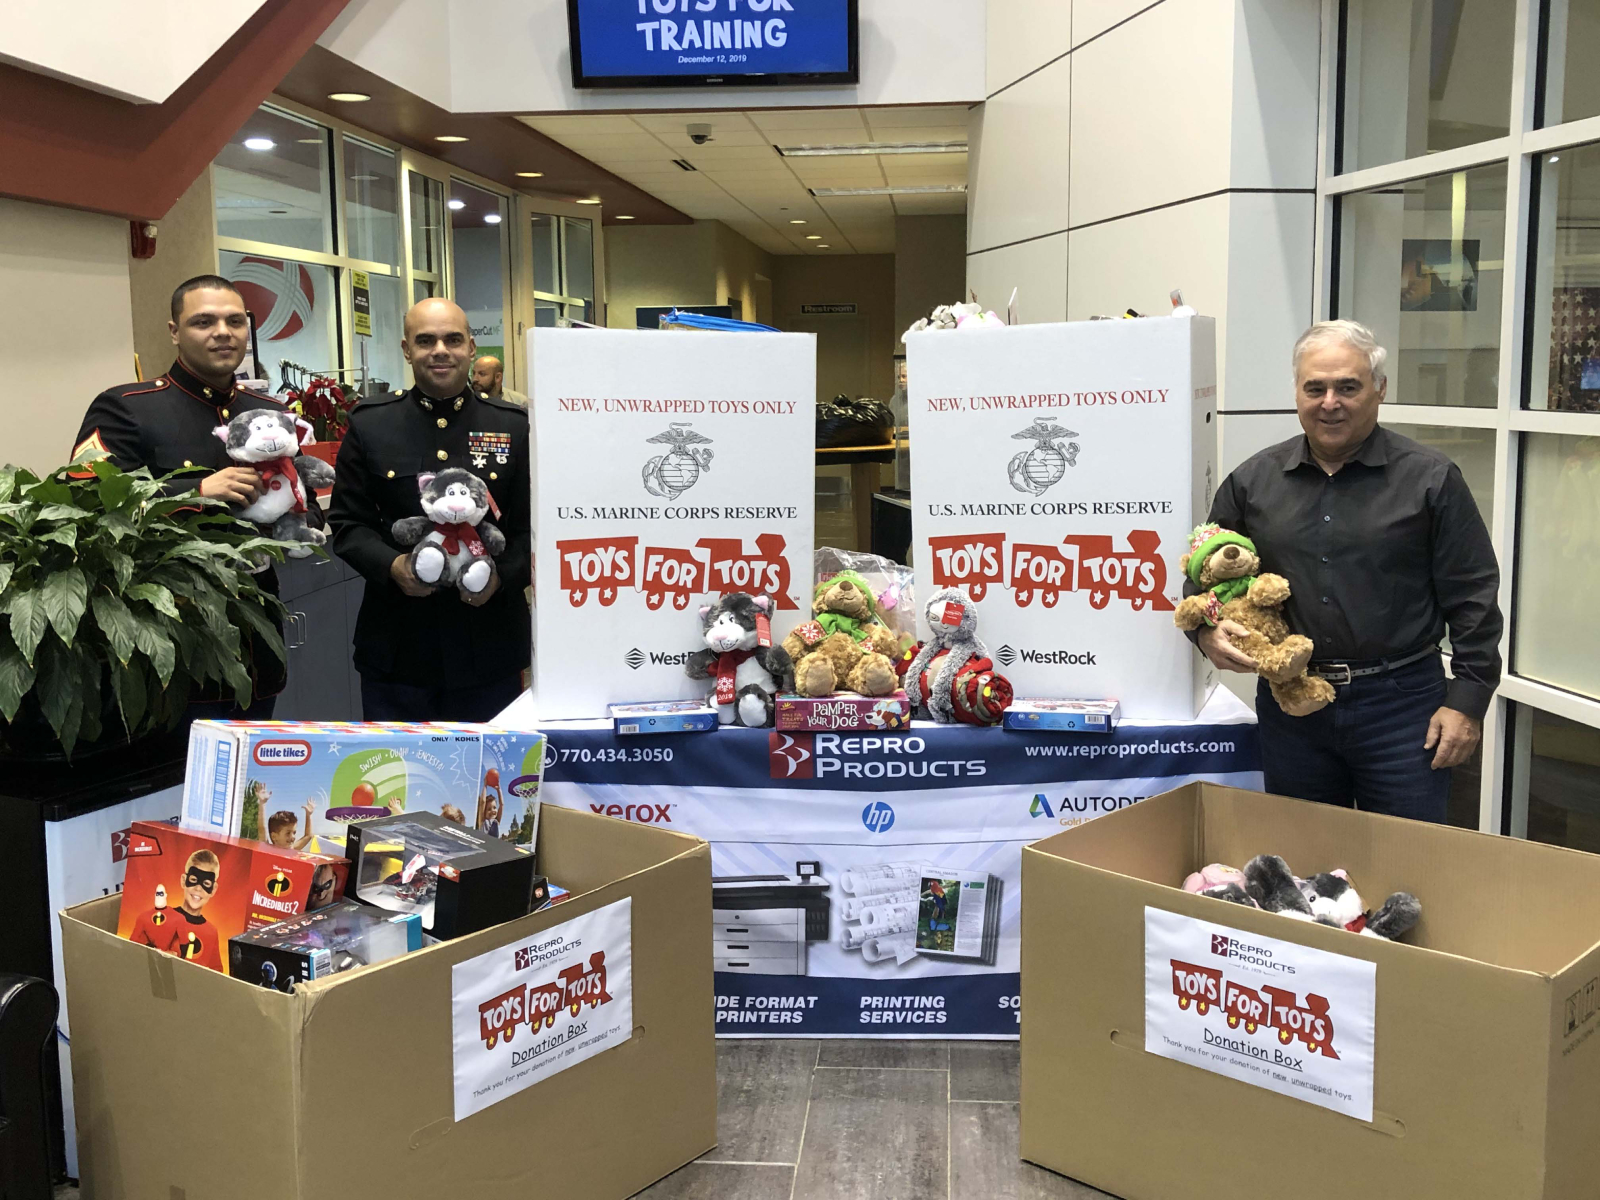 Toys for Tots Optimized